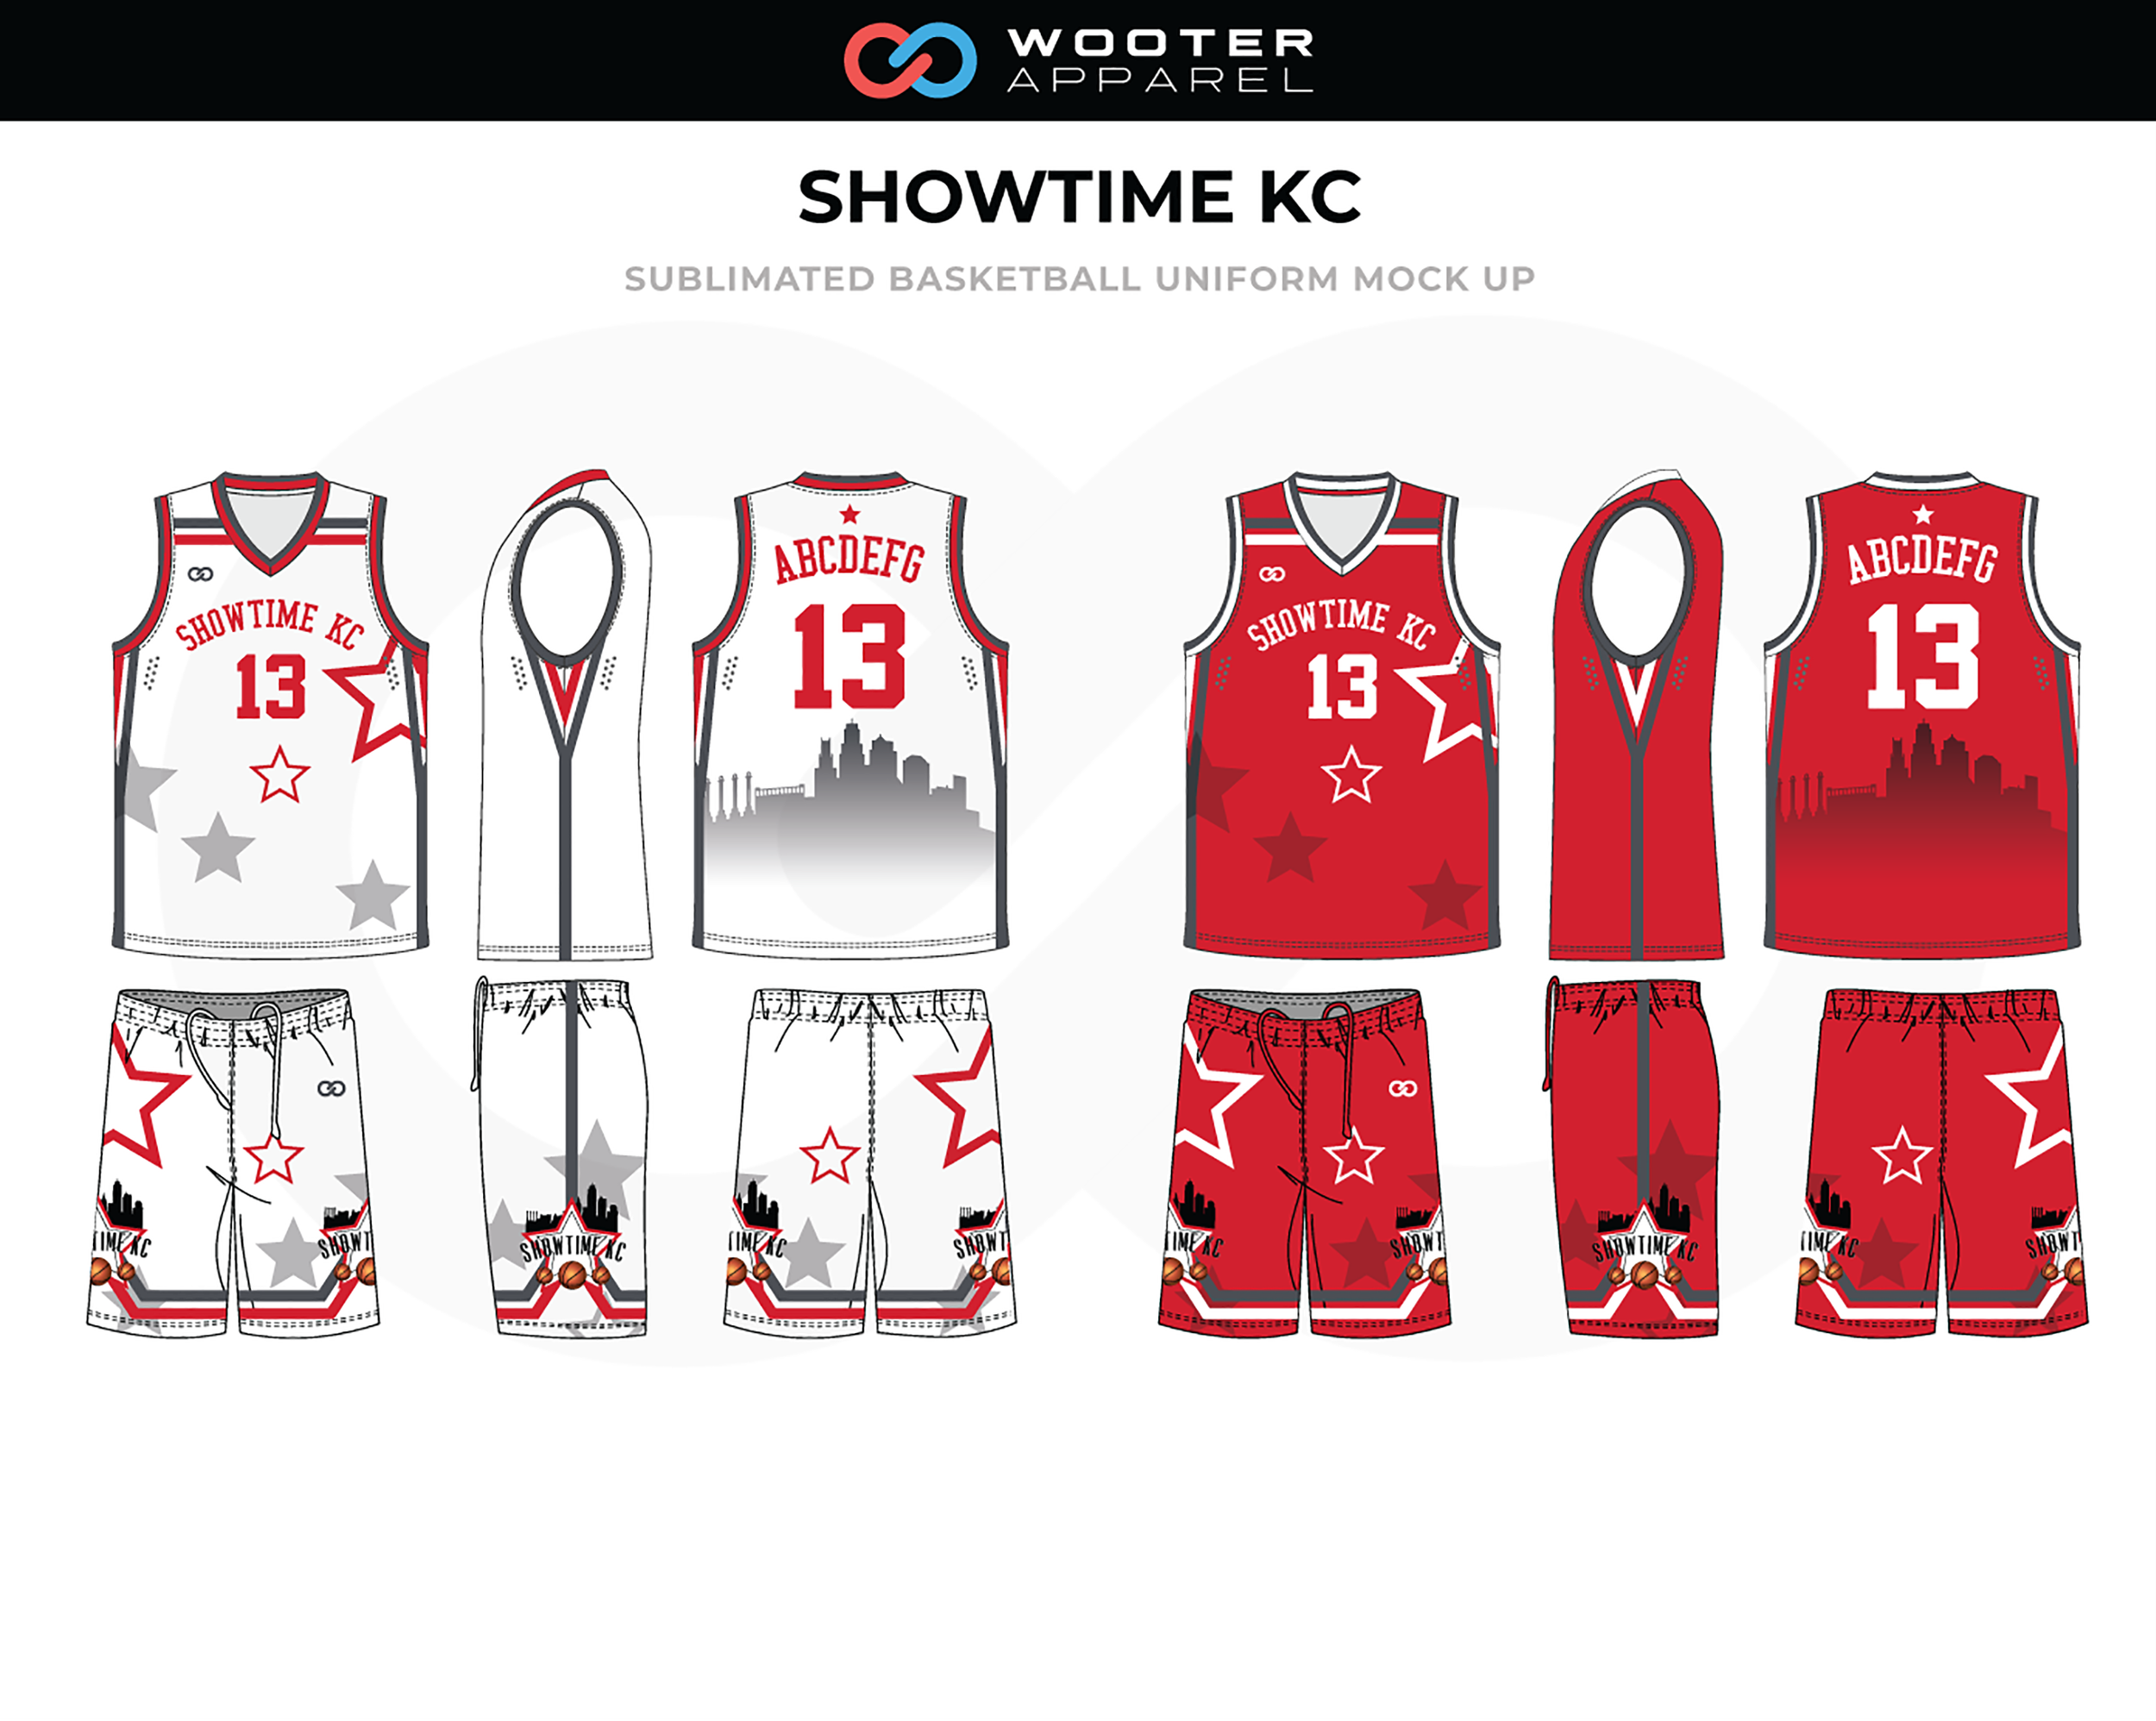 SHOWTIME KC Red White Black Basketball Uniform, Jersey and Shorts